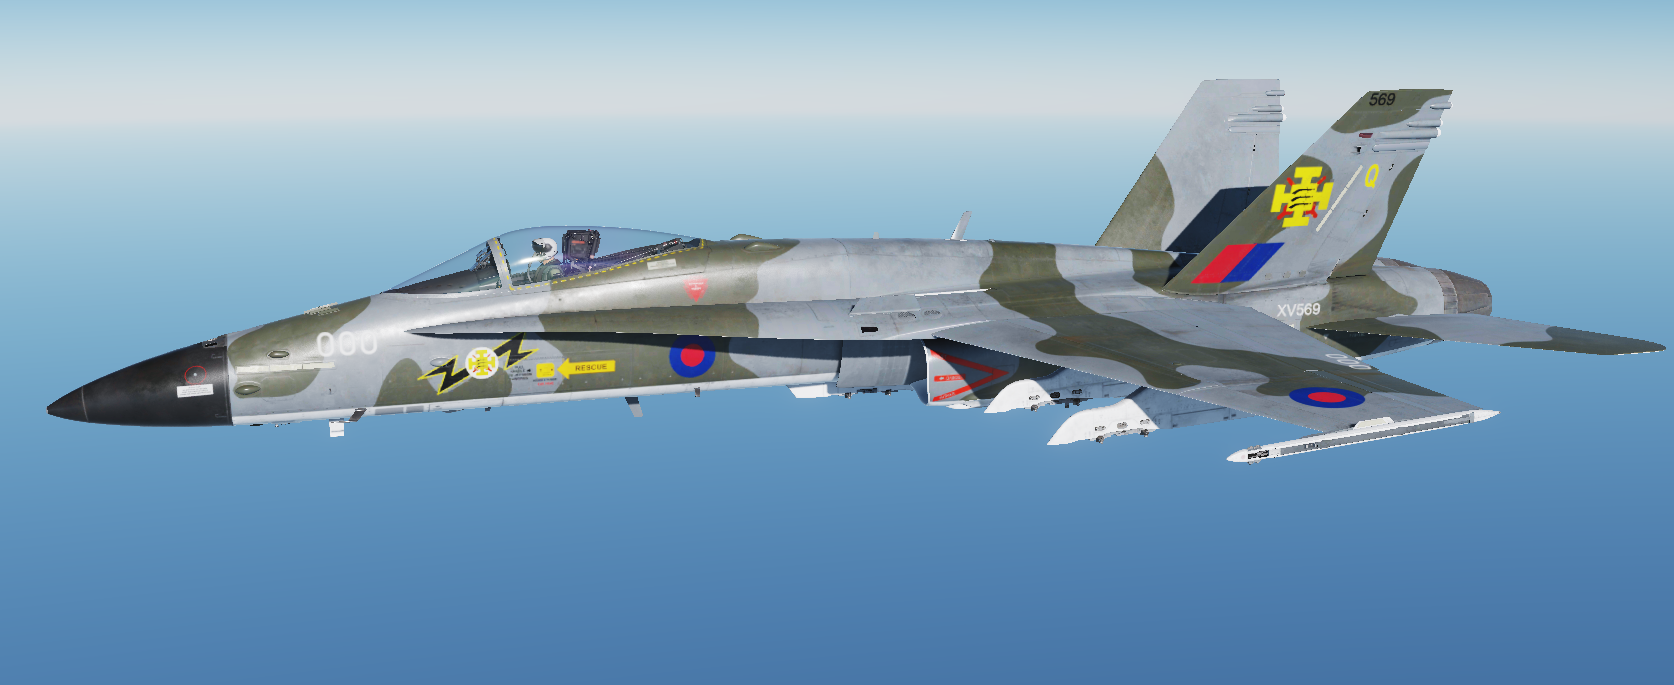 Royal Air Force F/A-18C Hornet Fictional skin based on a Phantom FG1 livery